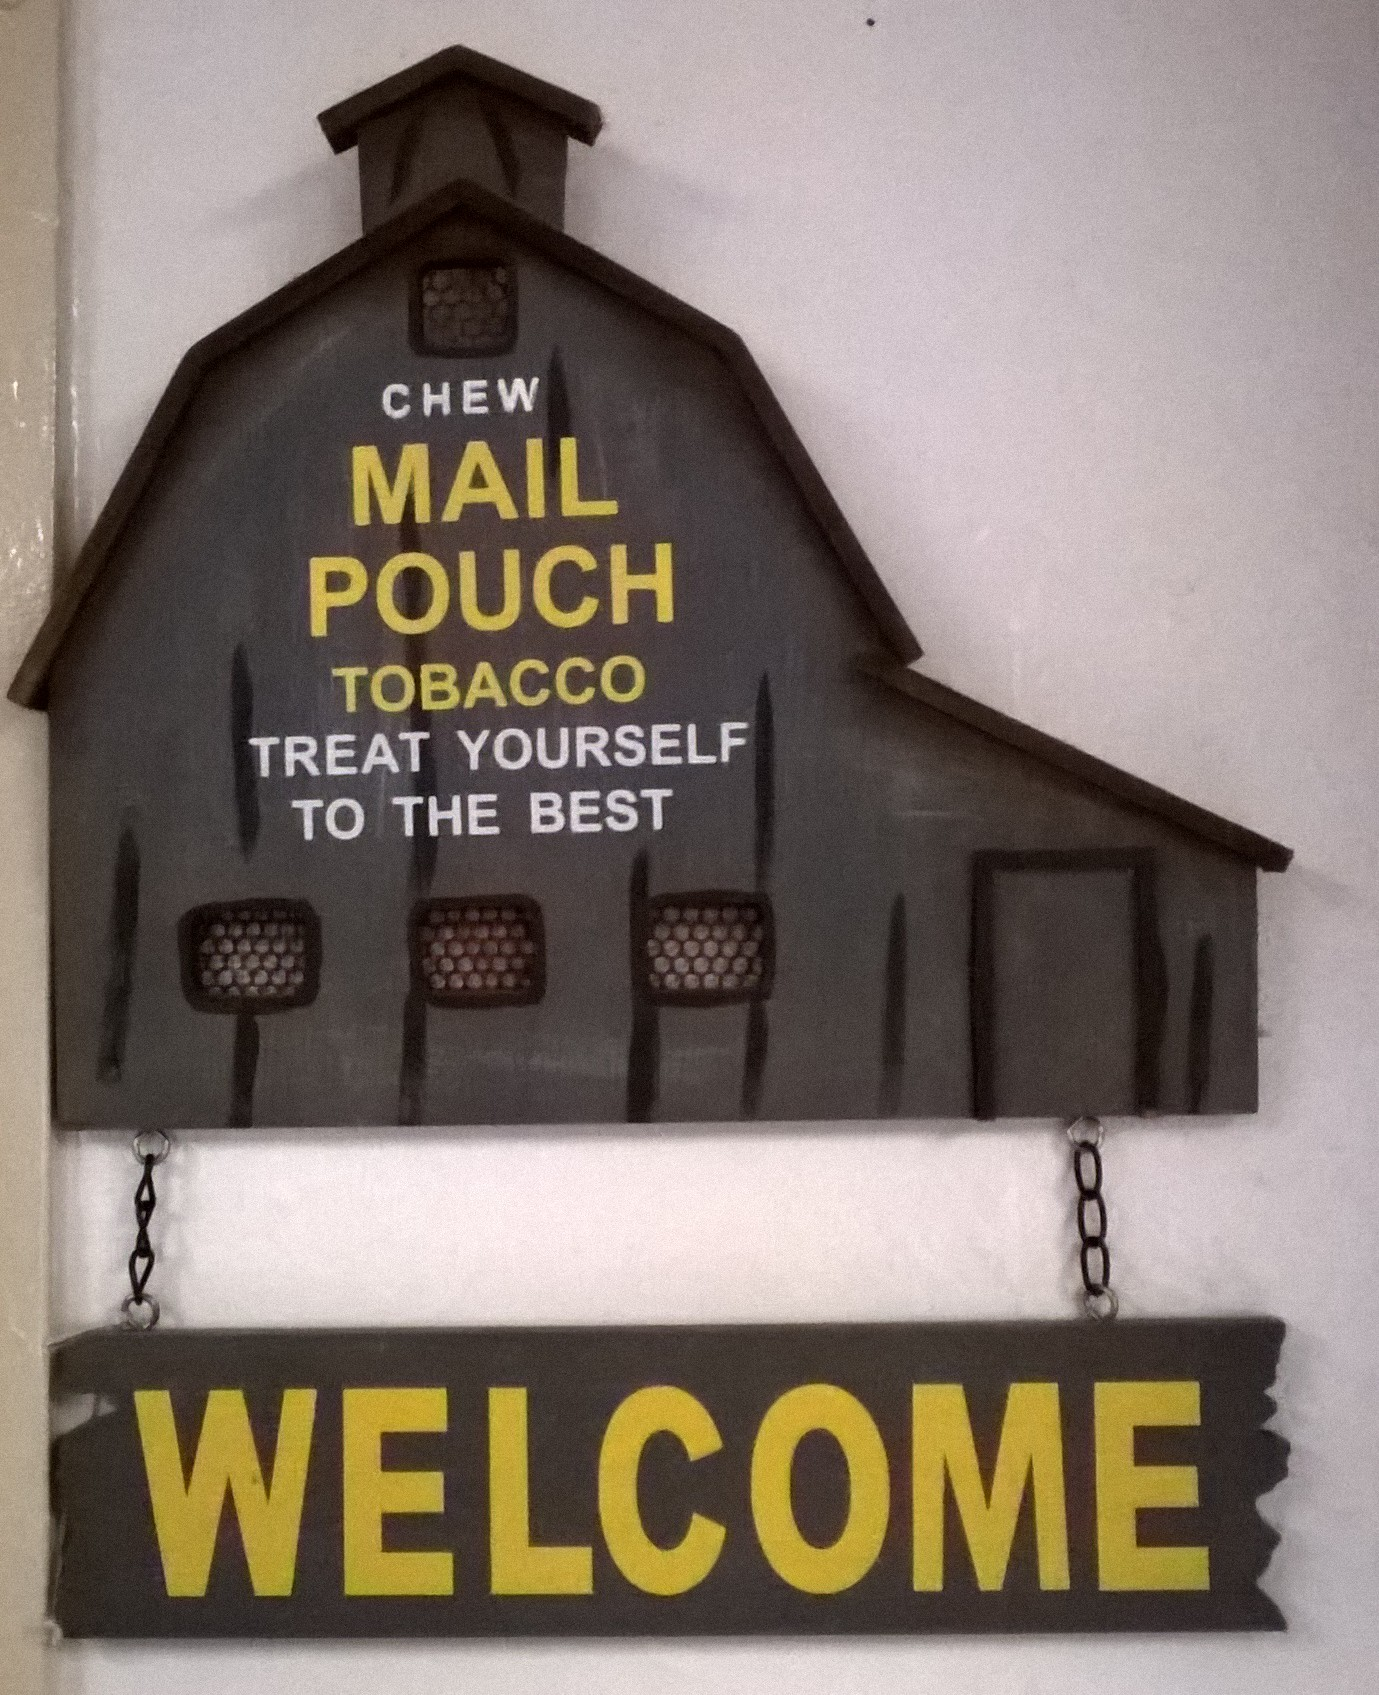 Mail Pouch Tobacco Barn Wall art